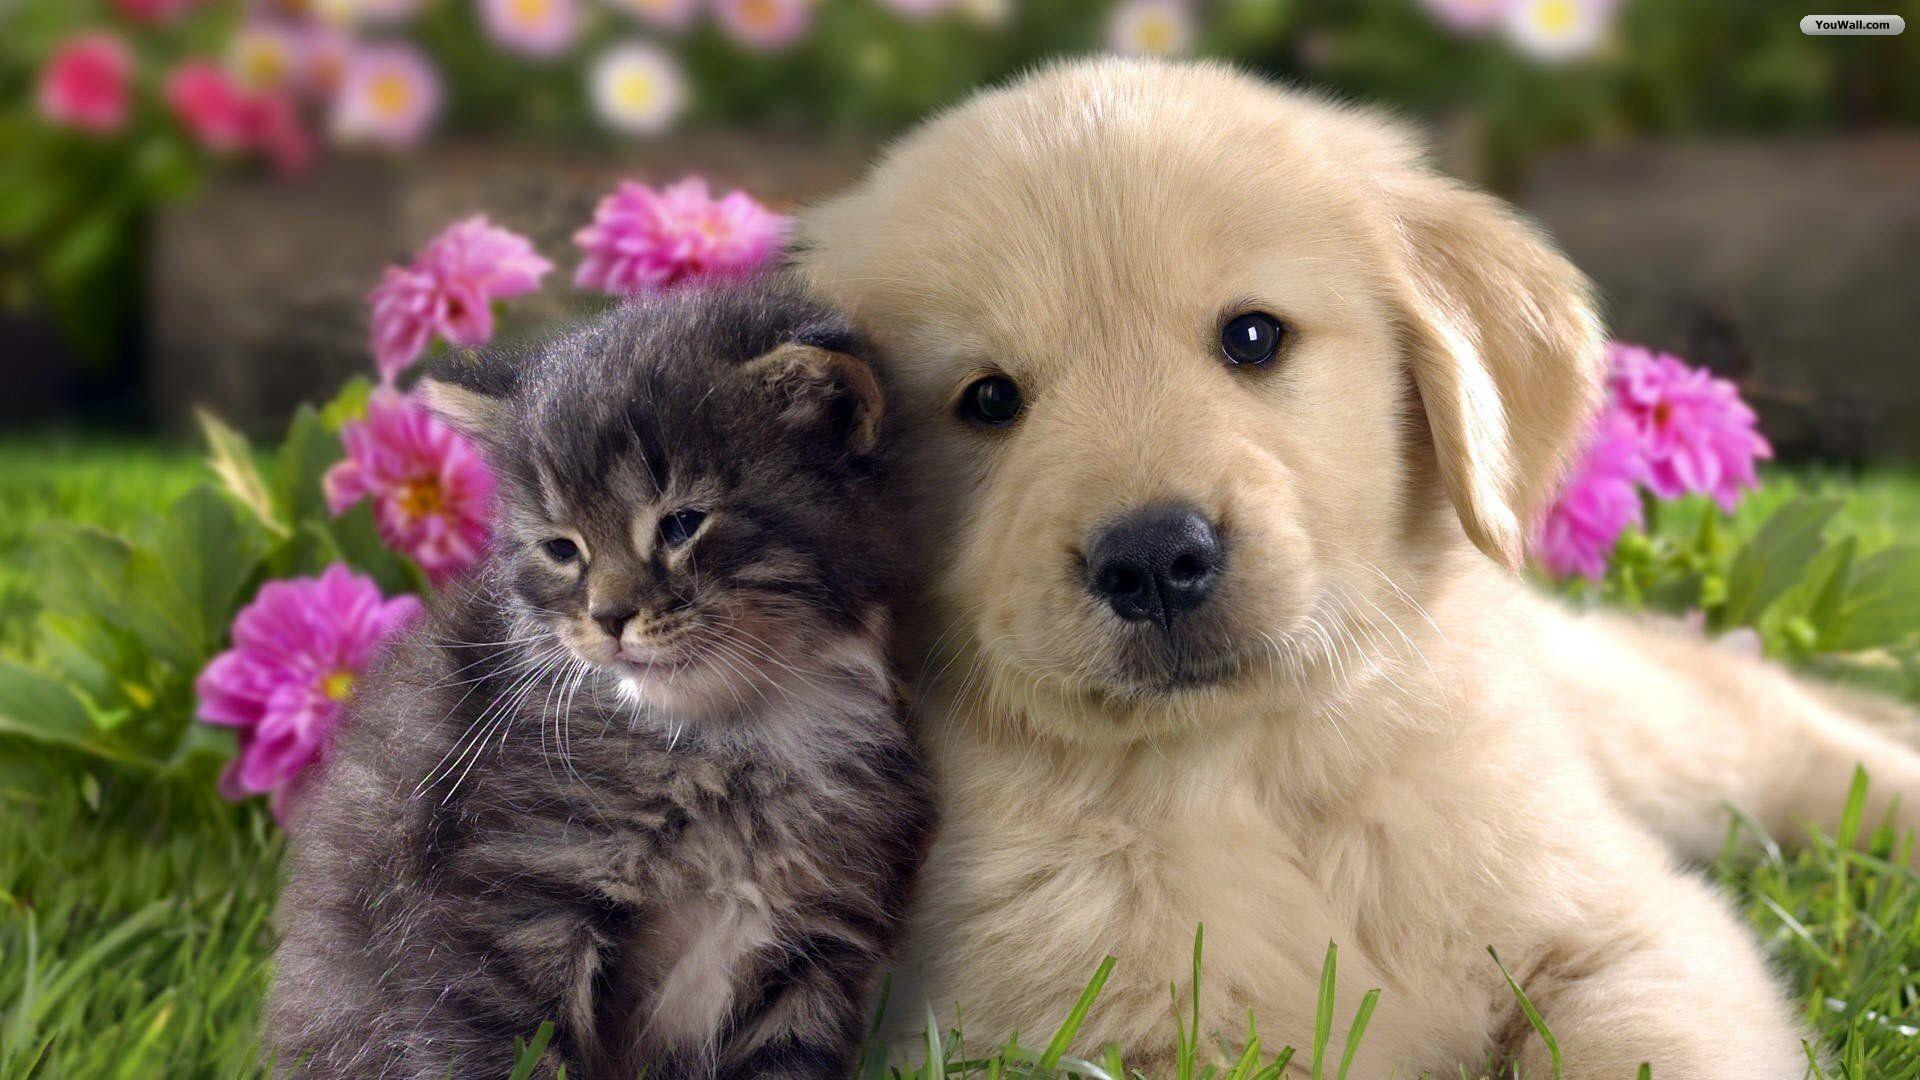 Cat And Dog Wallpapers 90 20852 High Definition Wallpapers